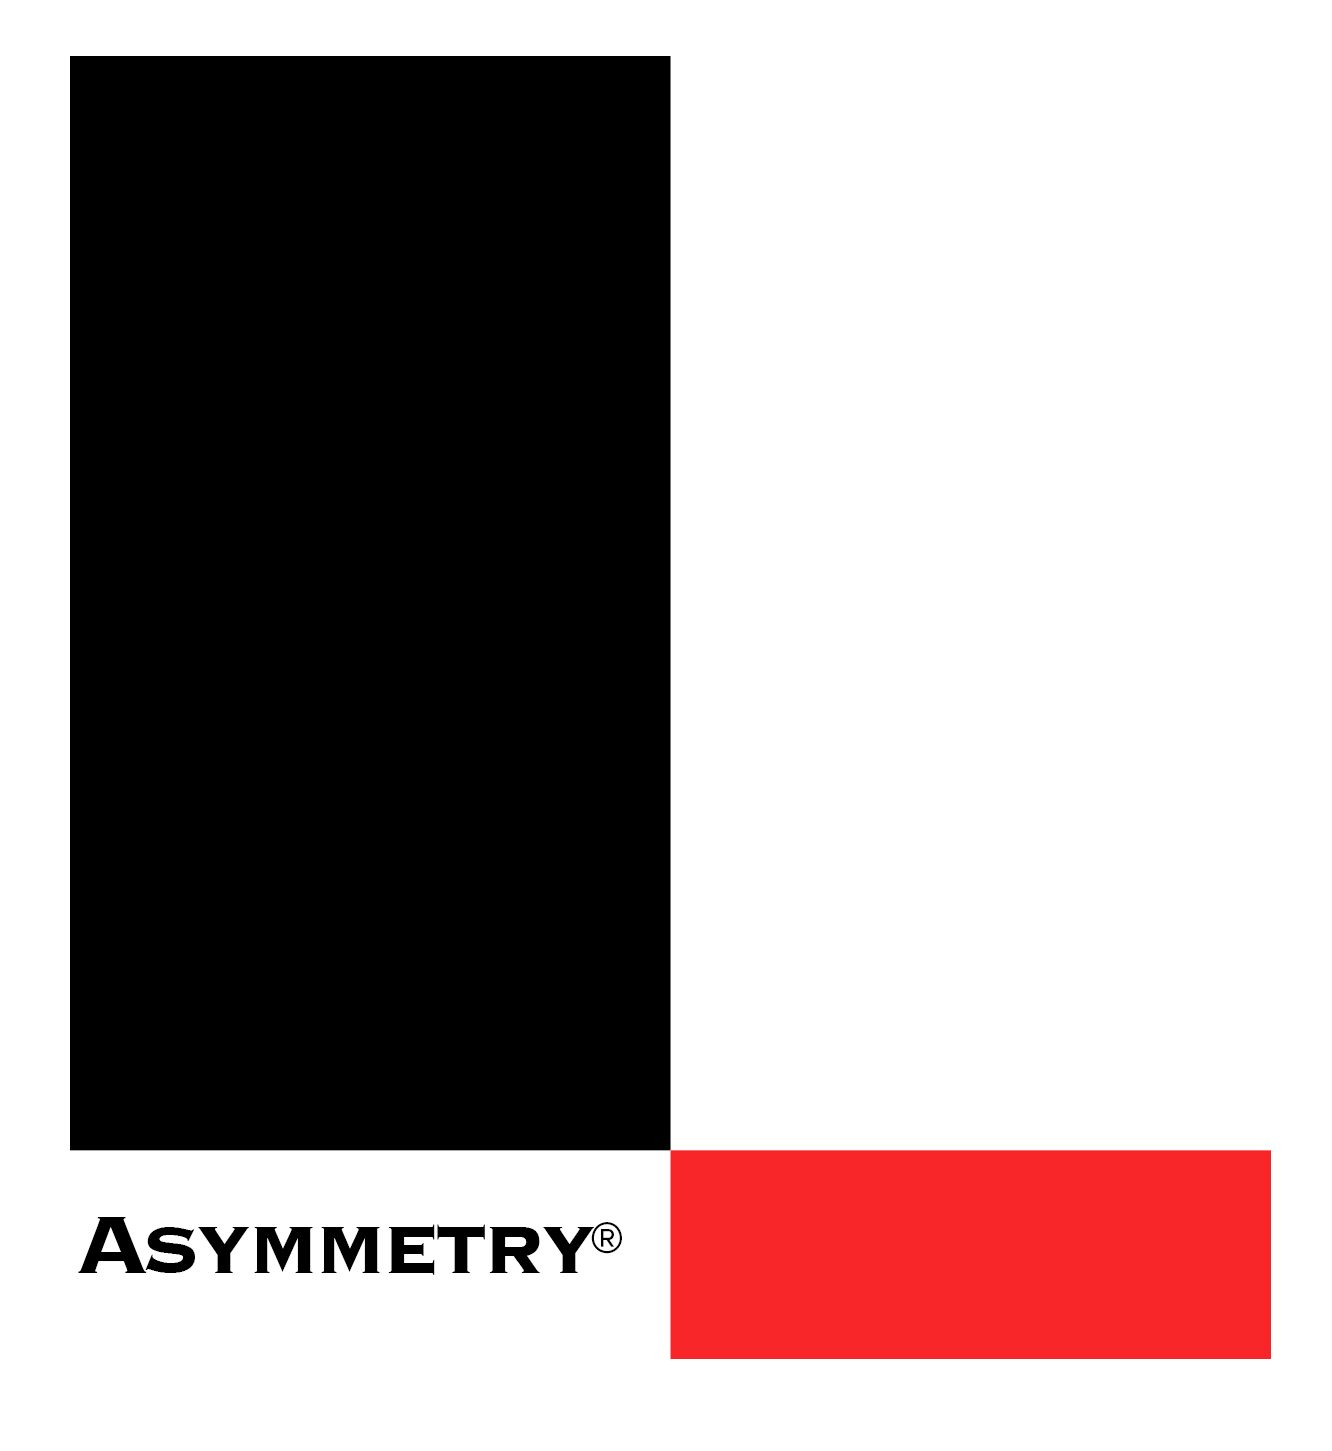 cropped-asymmetry-logo1.jpg